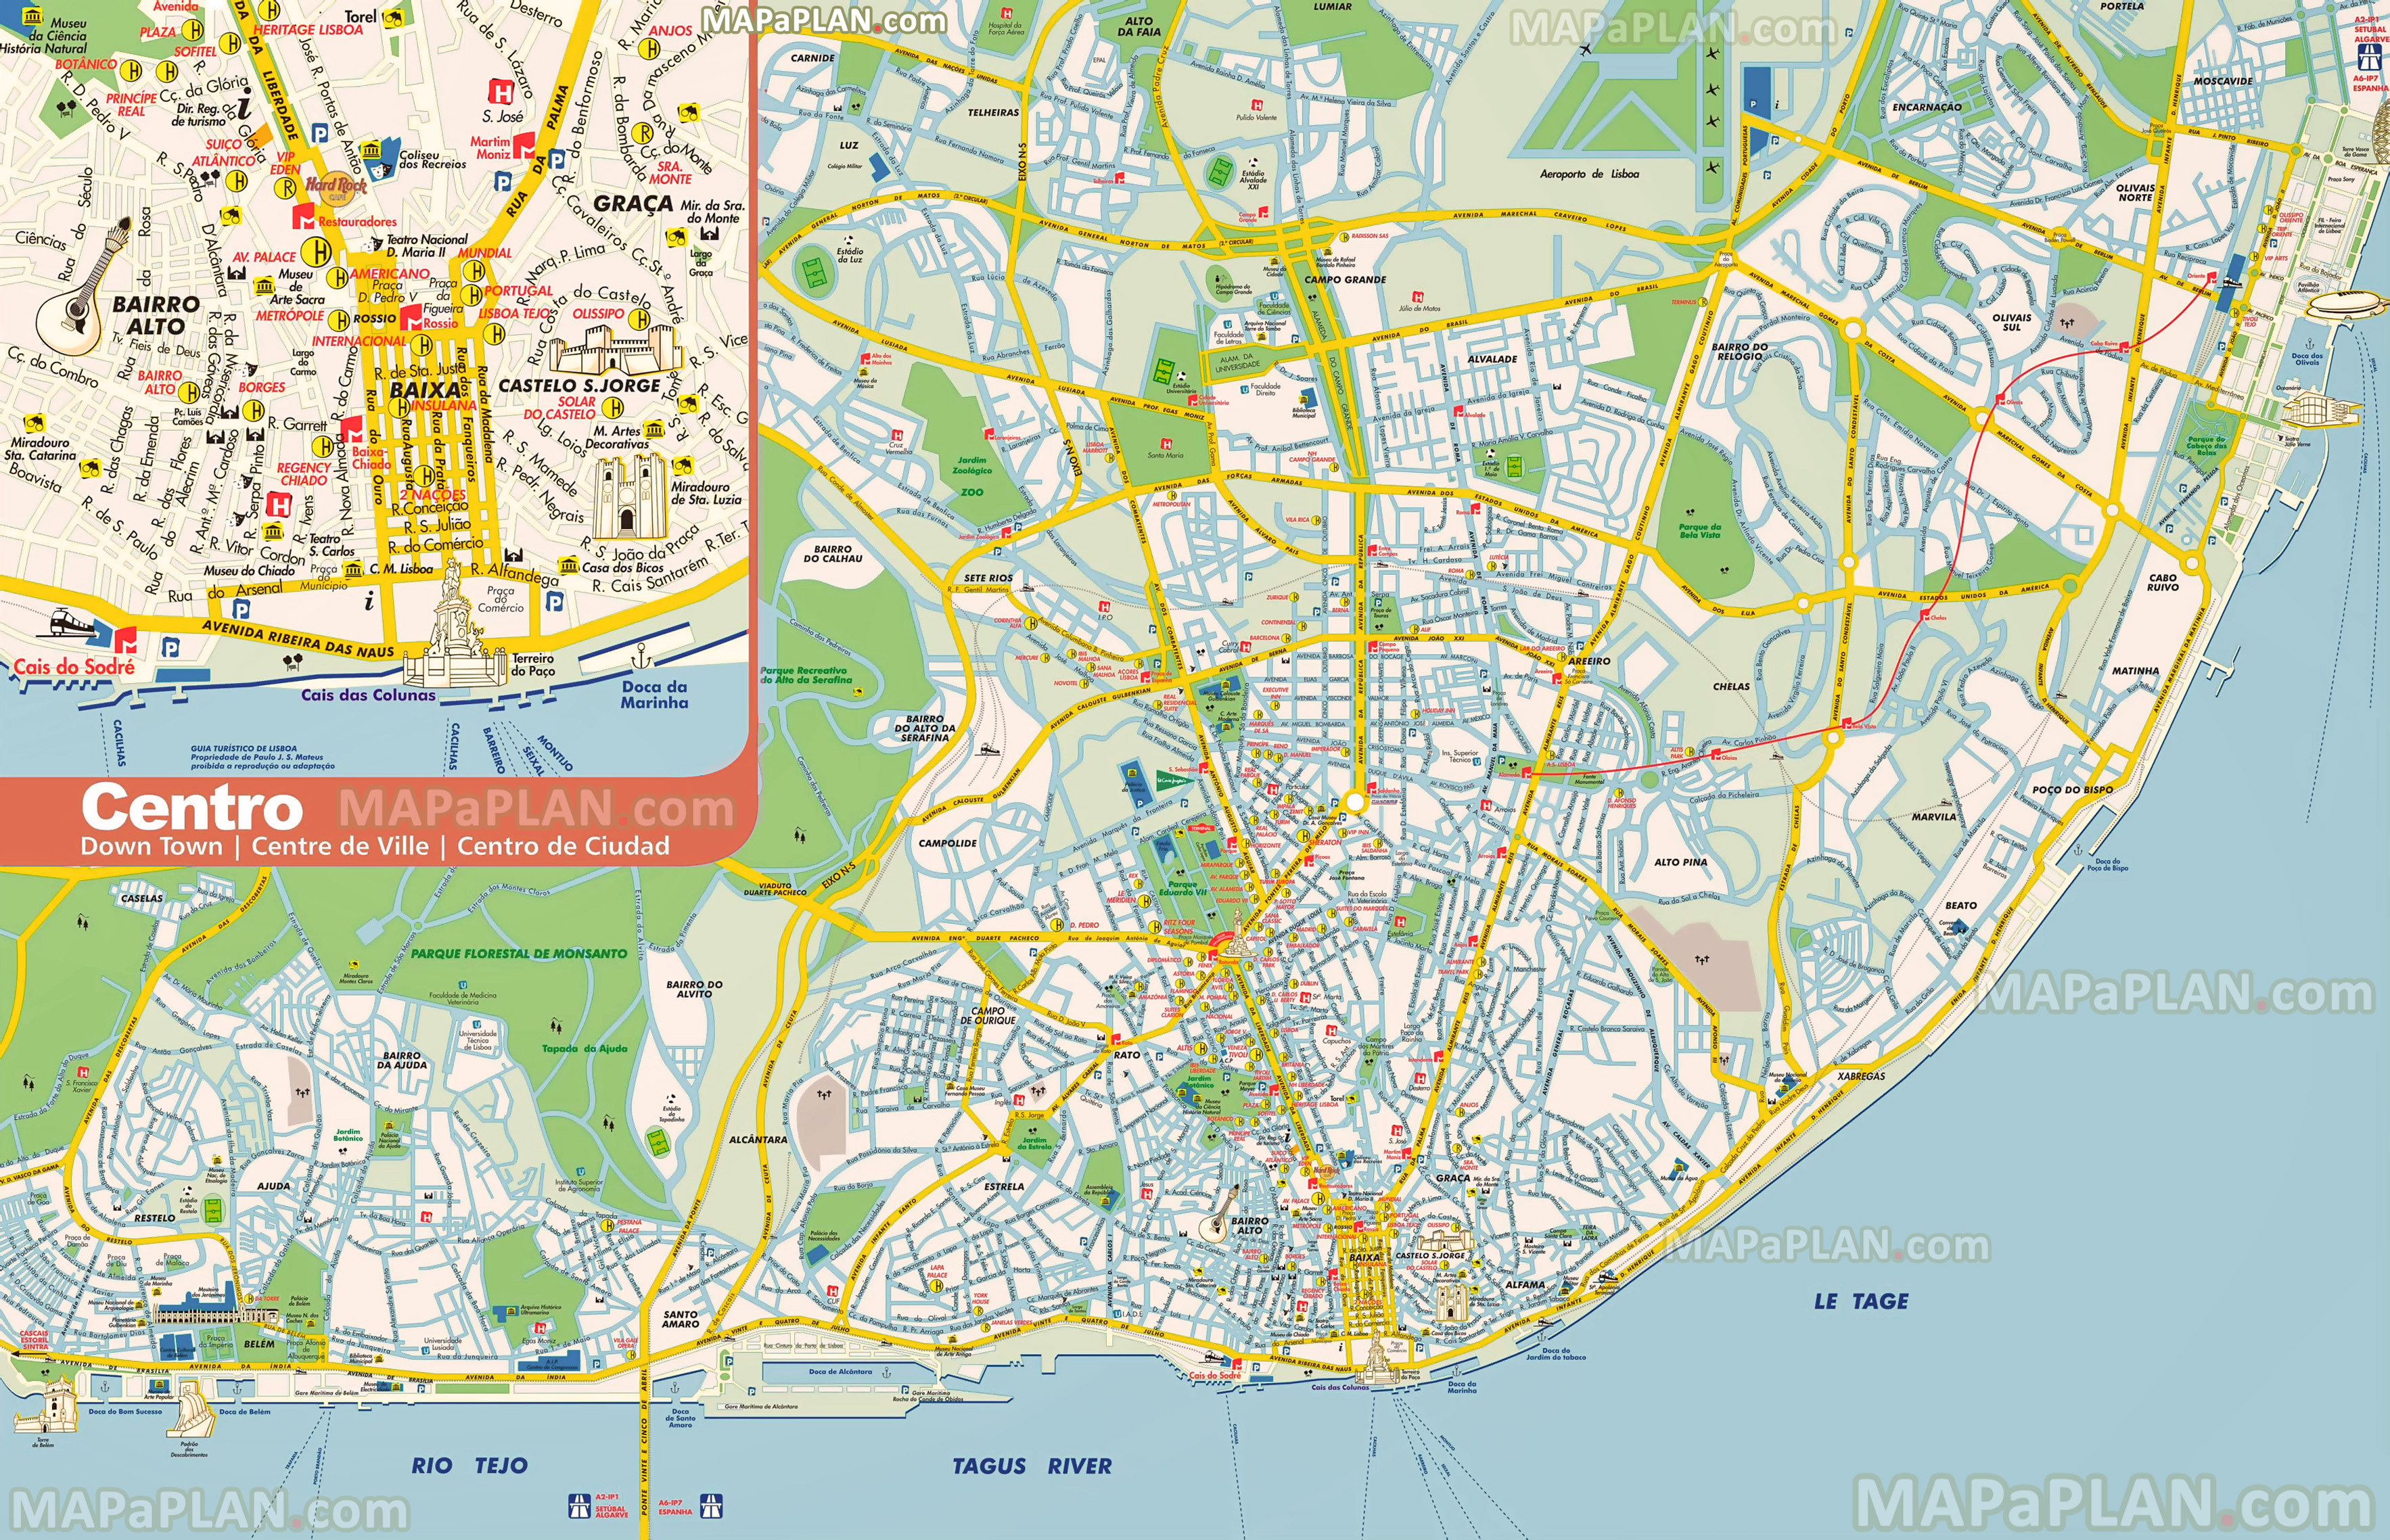 Printable Map Liverpool City Centre Best Of Lisbon Maps Top Tourist Attractions Free Printable City Street Map